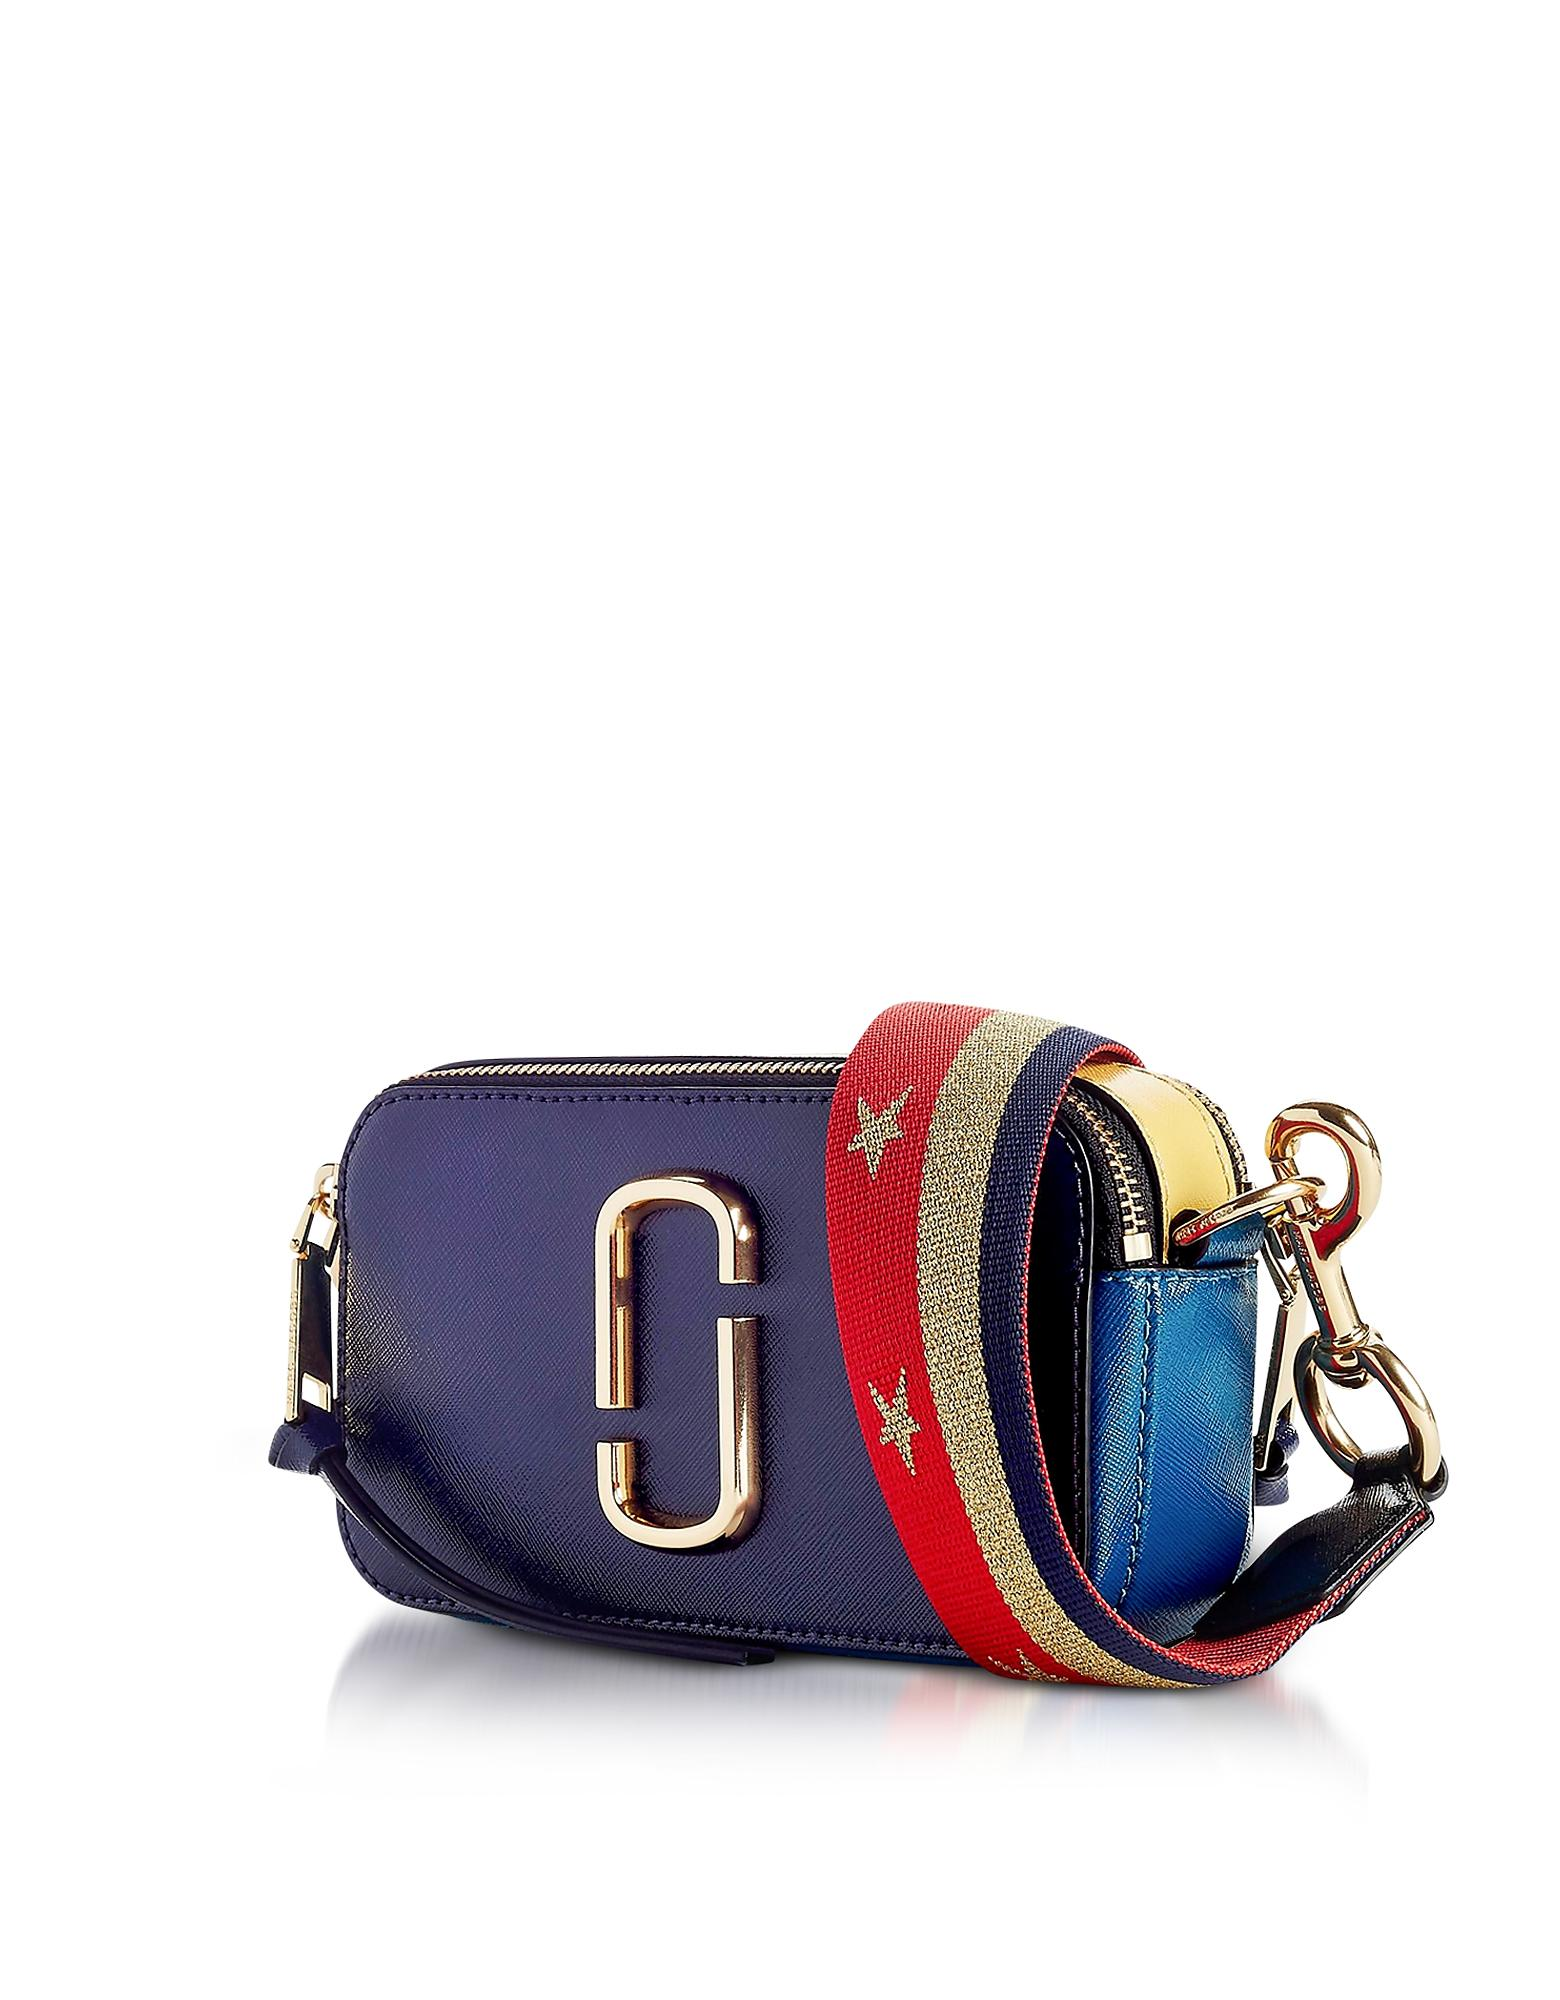 273c56e5031b Lyst - Marc Jacobs Midnight Blue Multi Snapshot Camera Bag in Blue